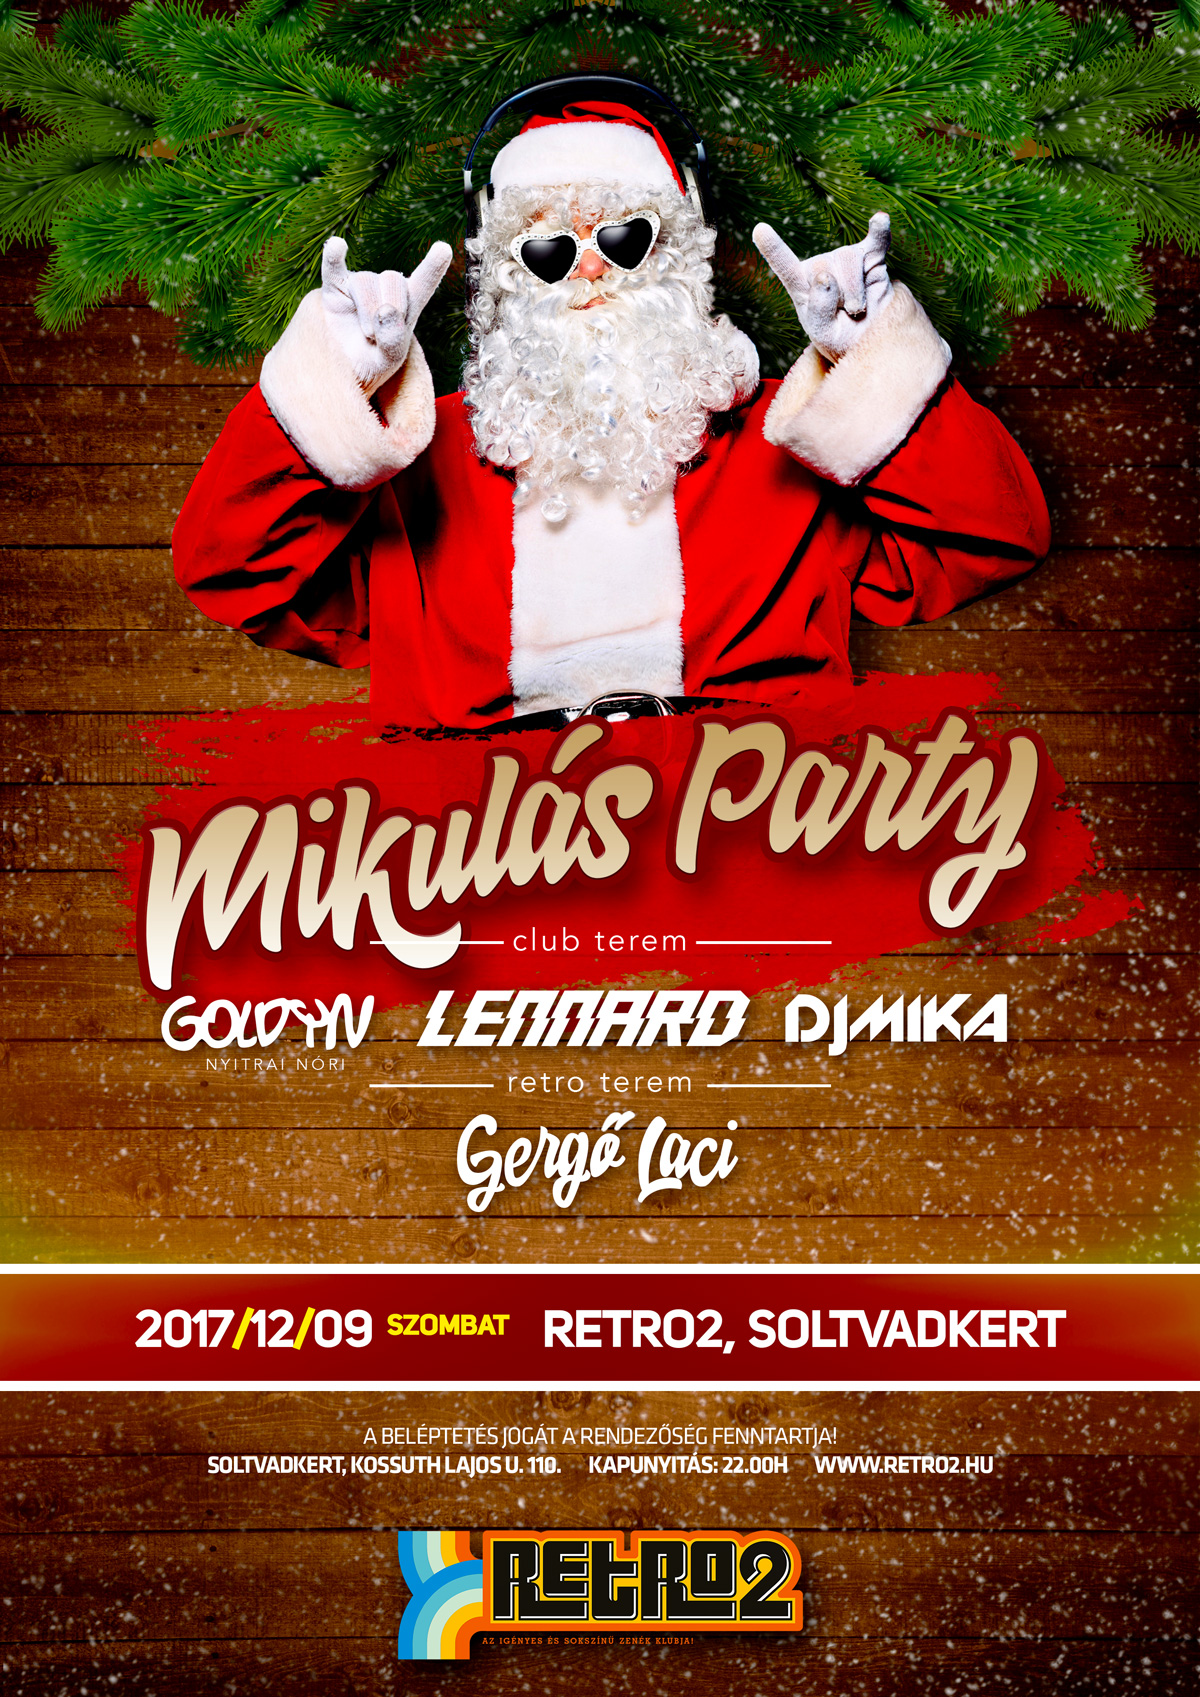 20171209 lennard goldyn mika flyer